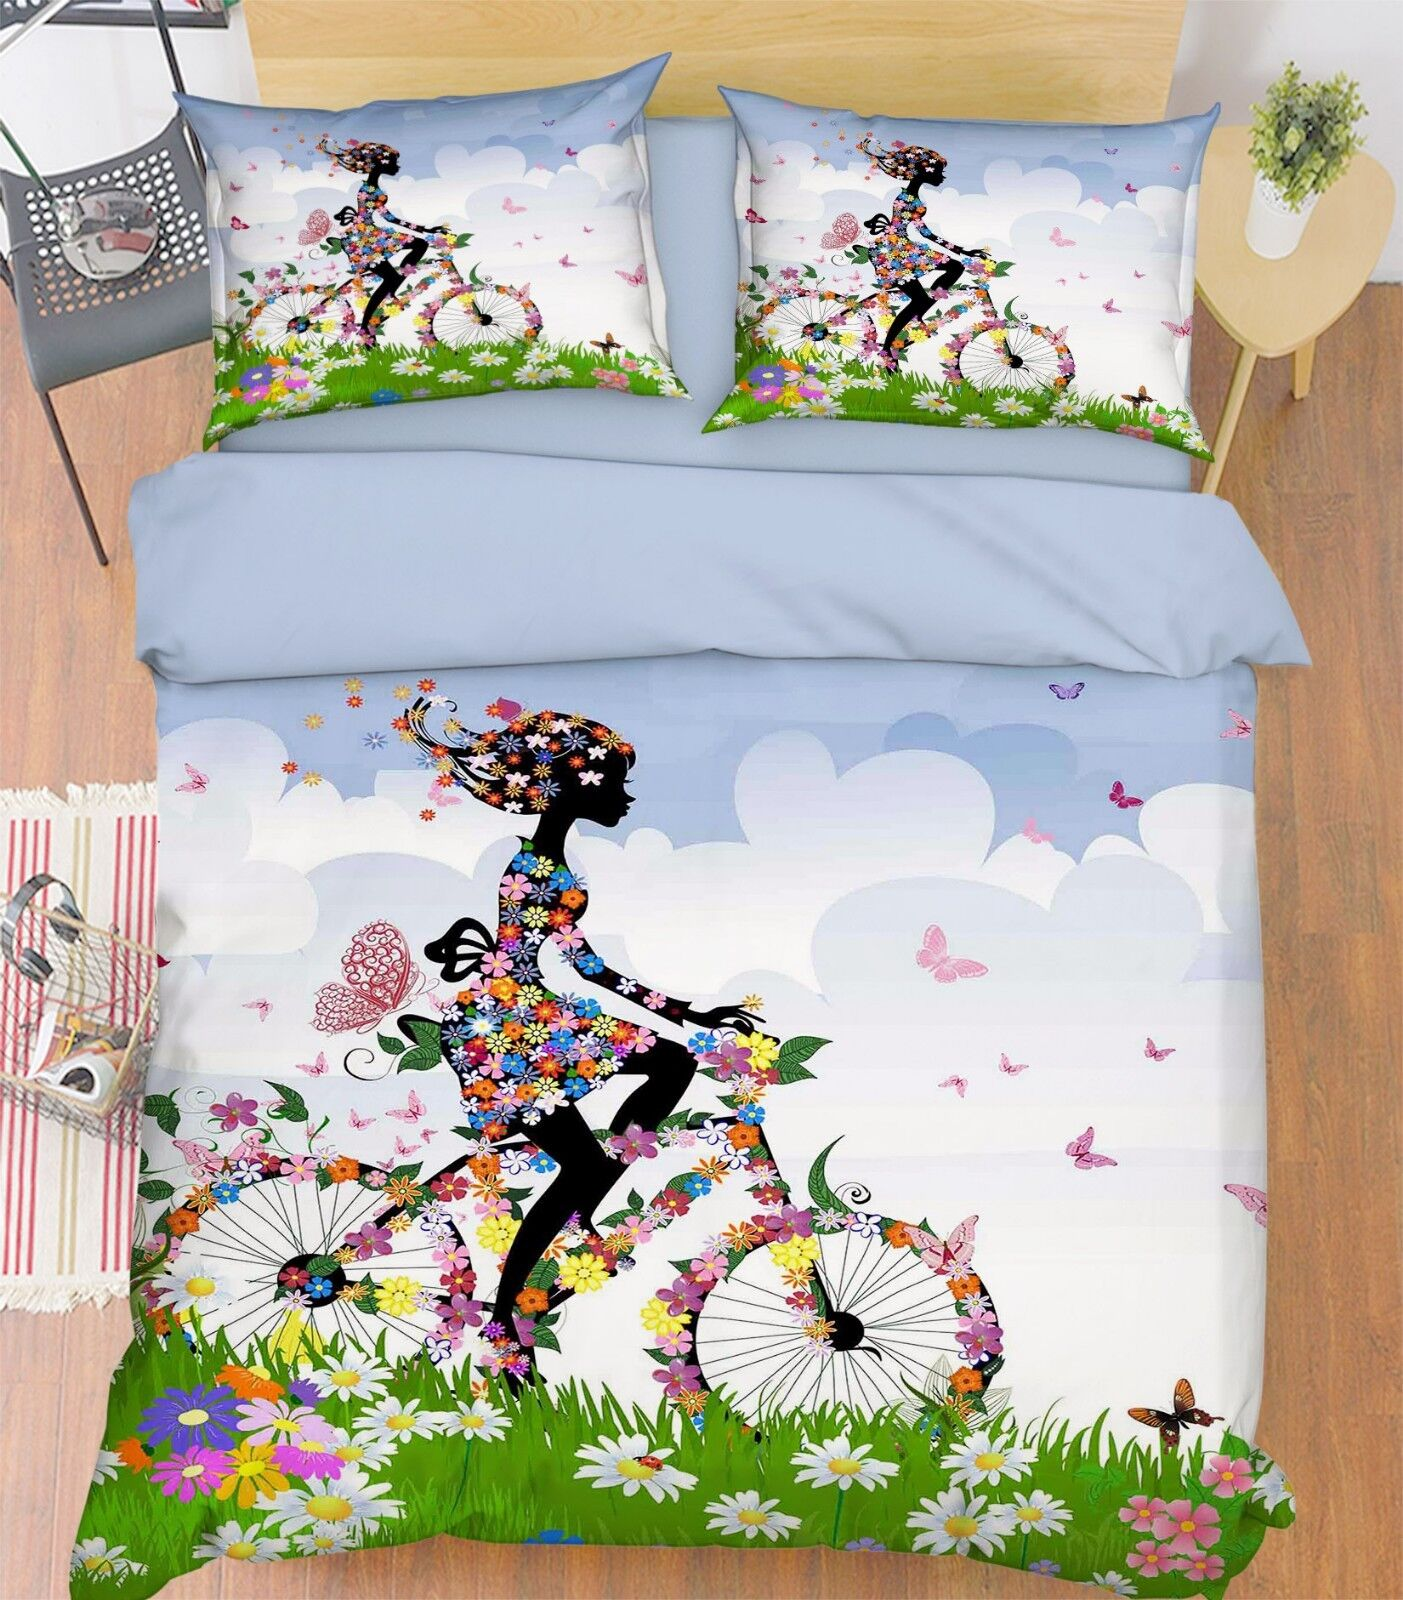 3D Flower Girl Bike 9 Bed Pillowcases Quilt Duvet Cover Set Single Queen King CA